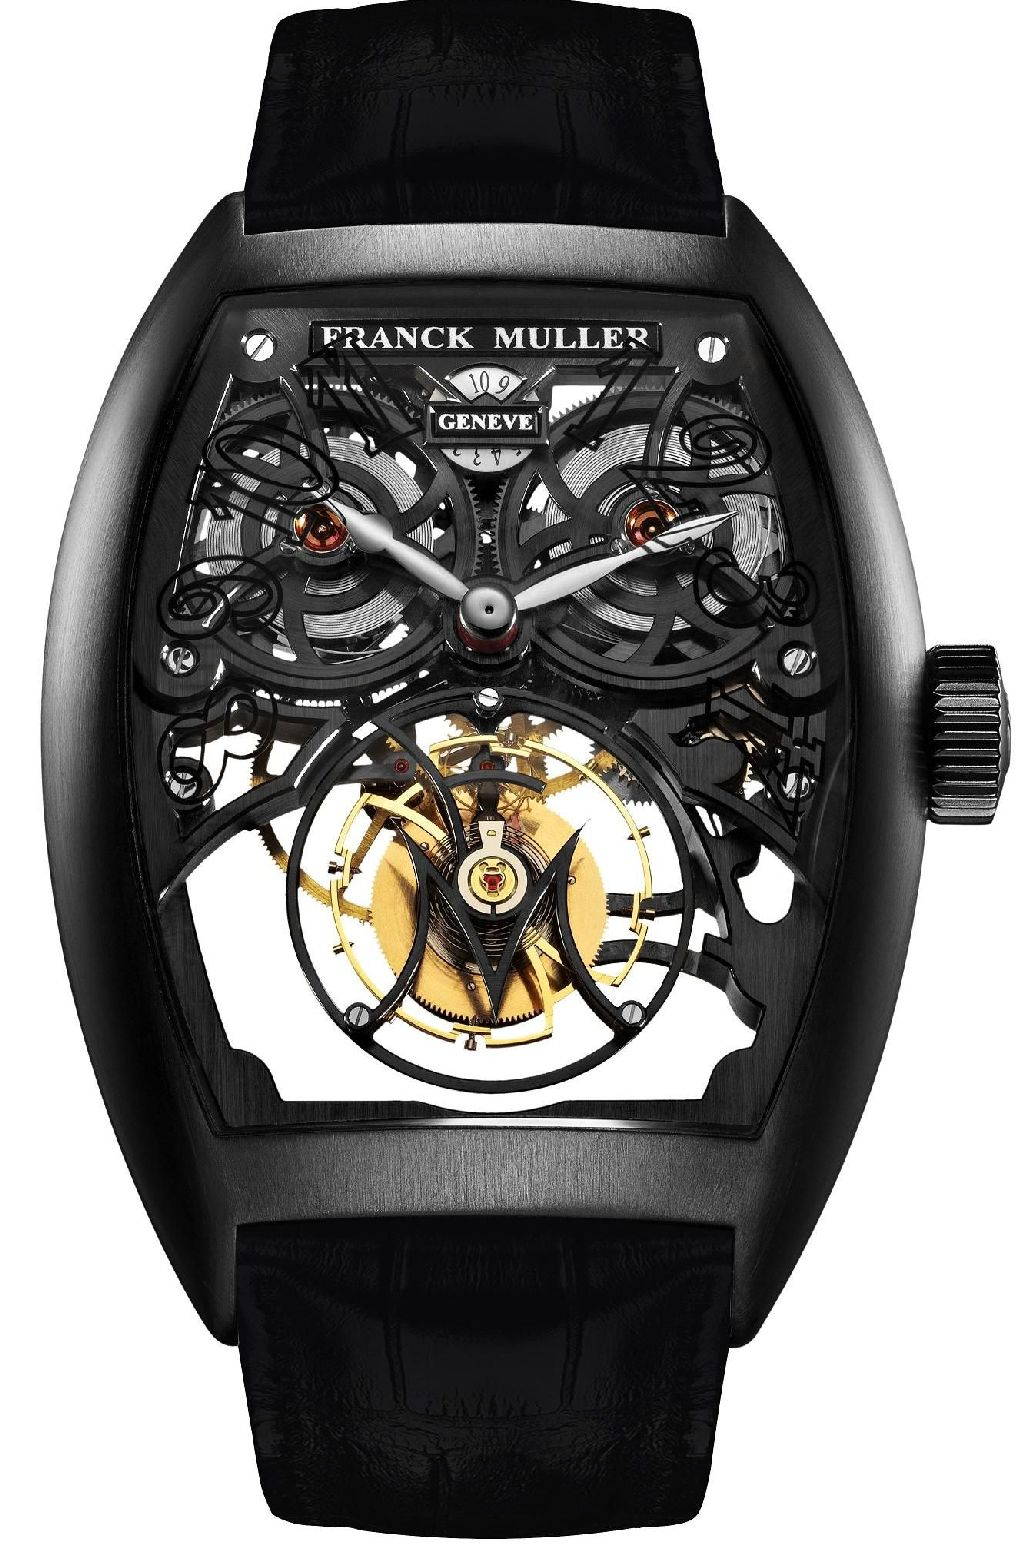 Franck muller fiyat for Franck muller watches